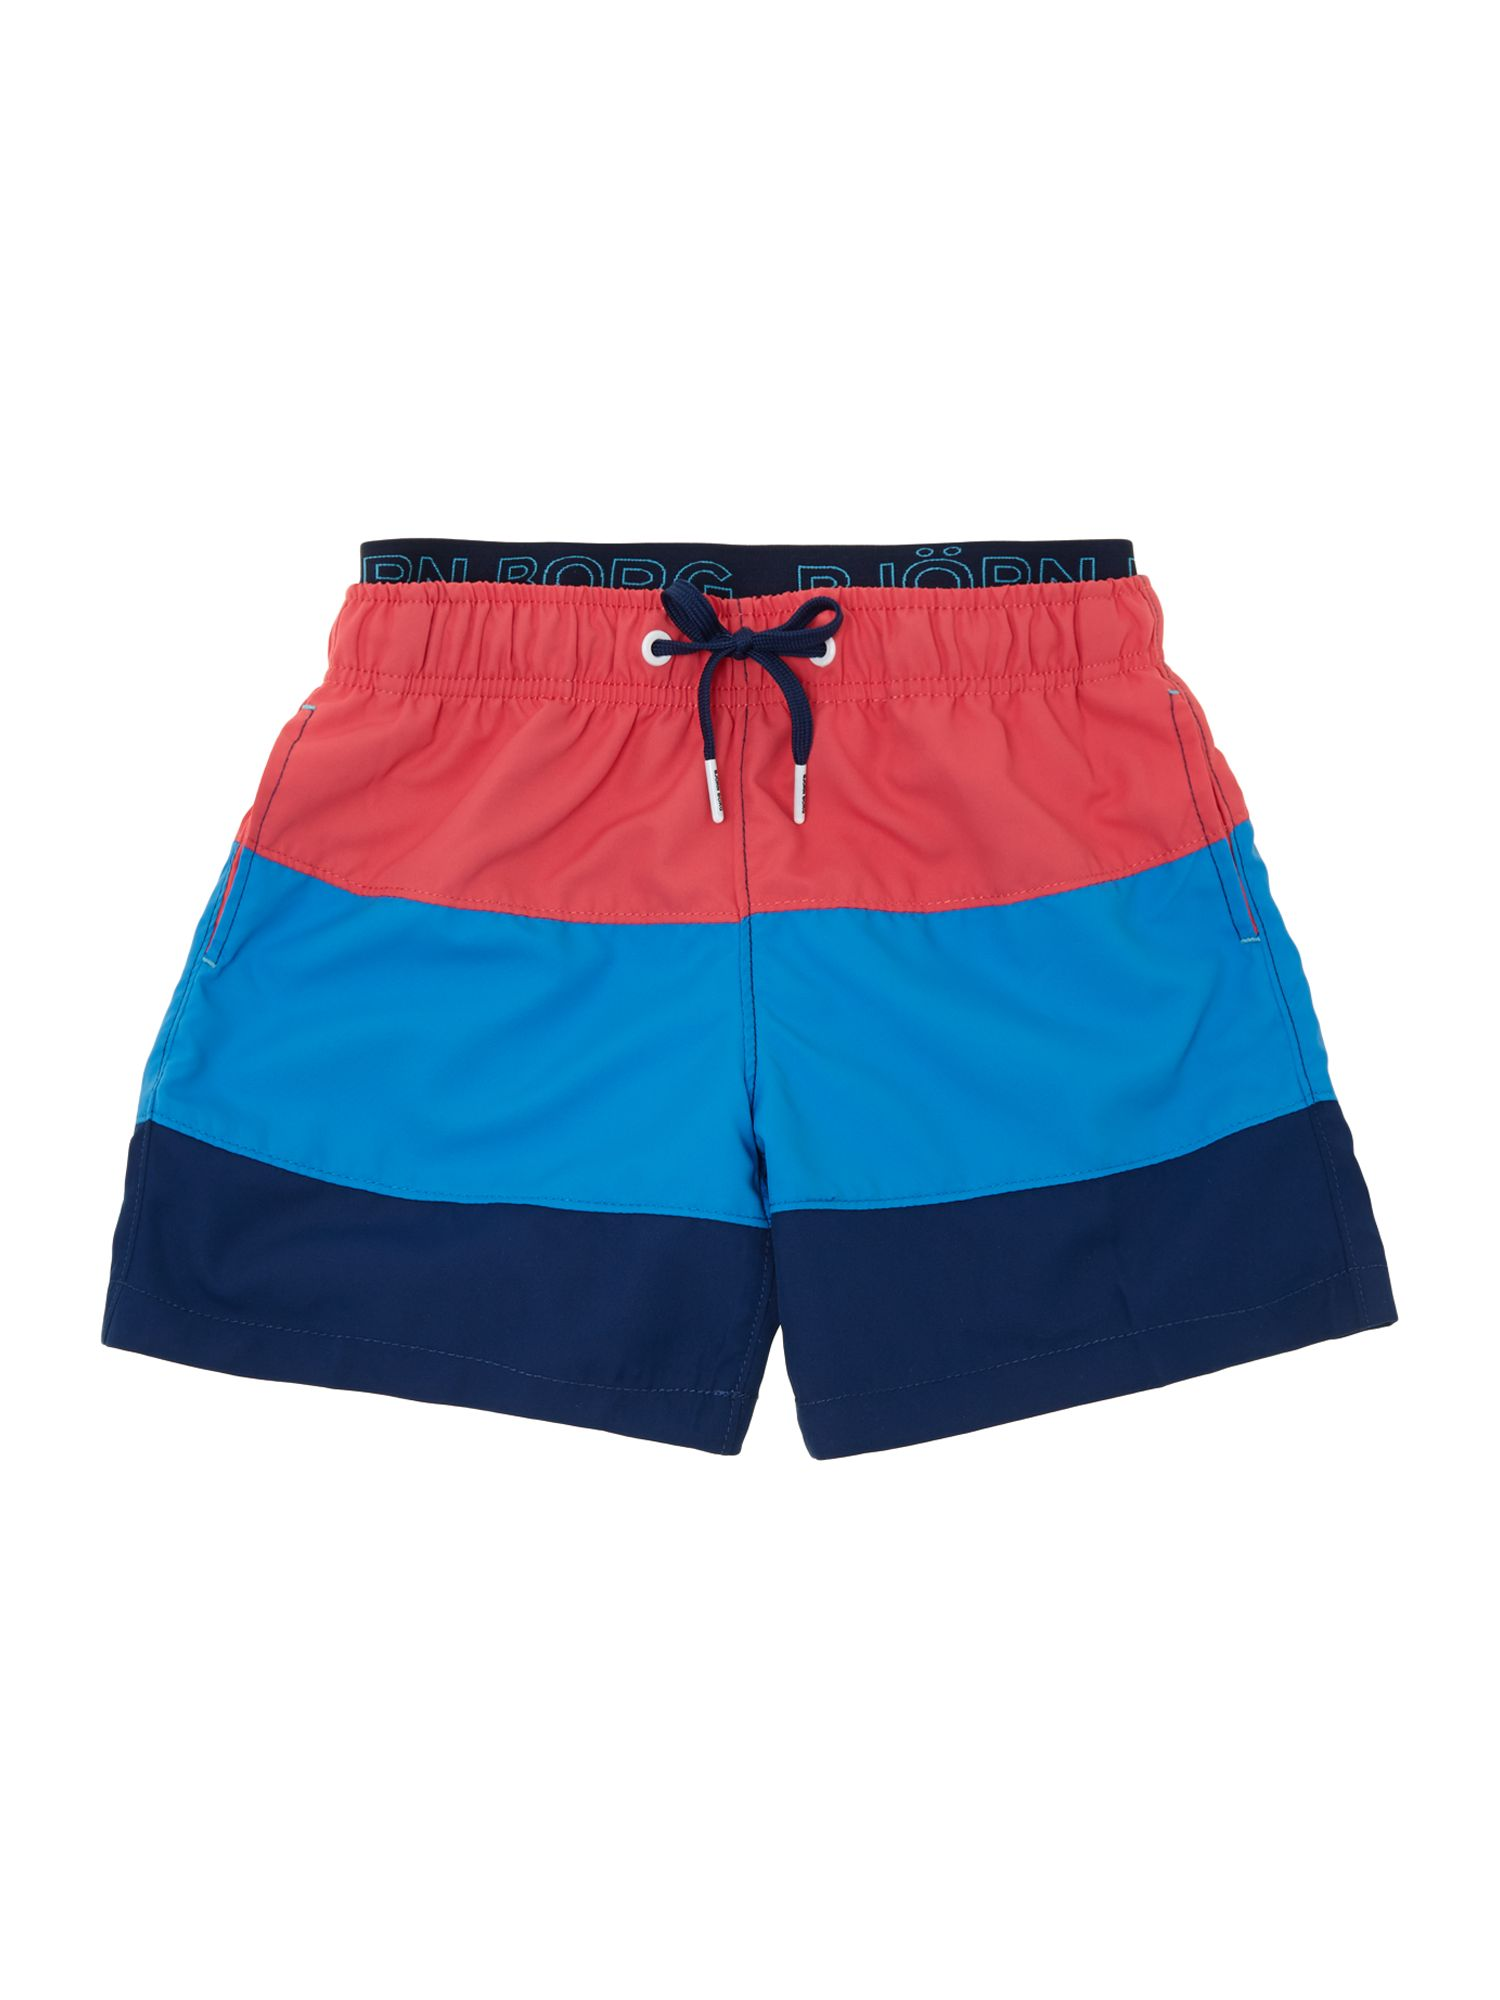 Boys colour block swim shorts